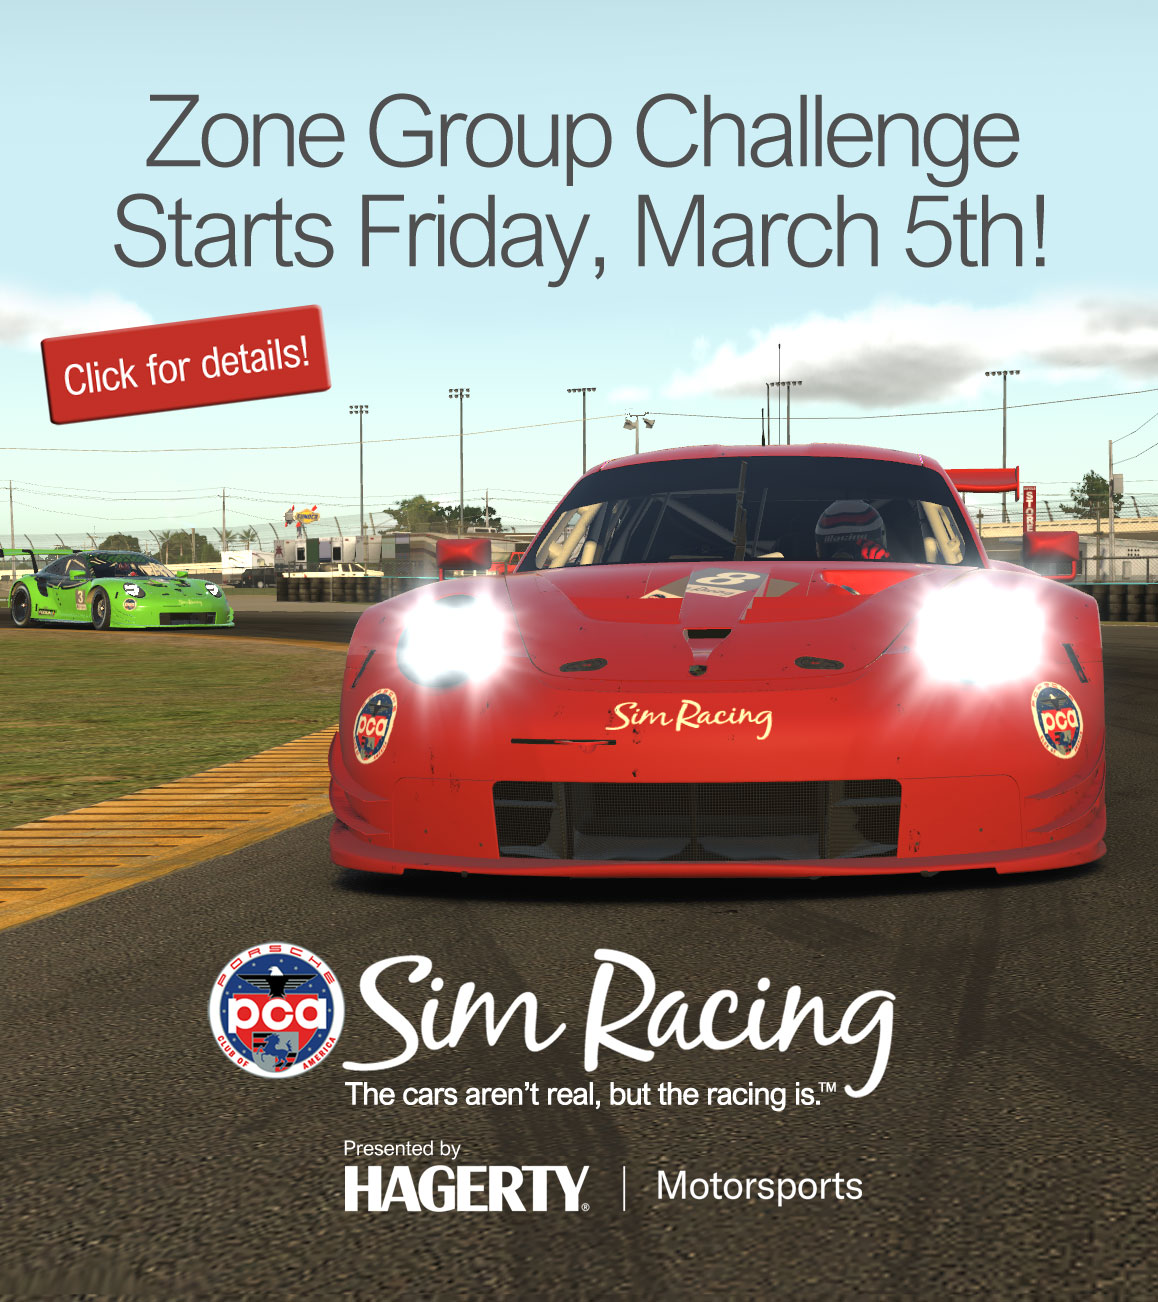 Zone Group Challenge